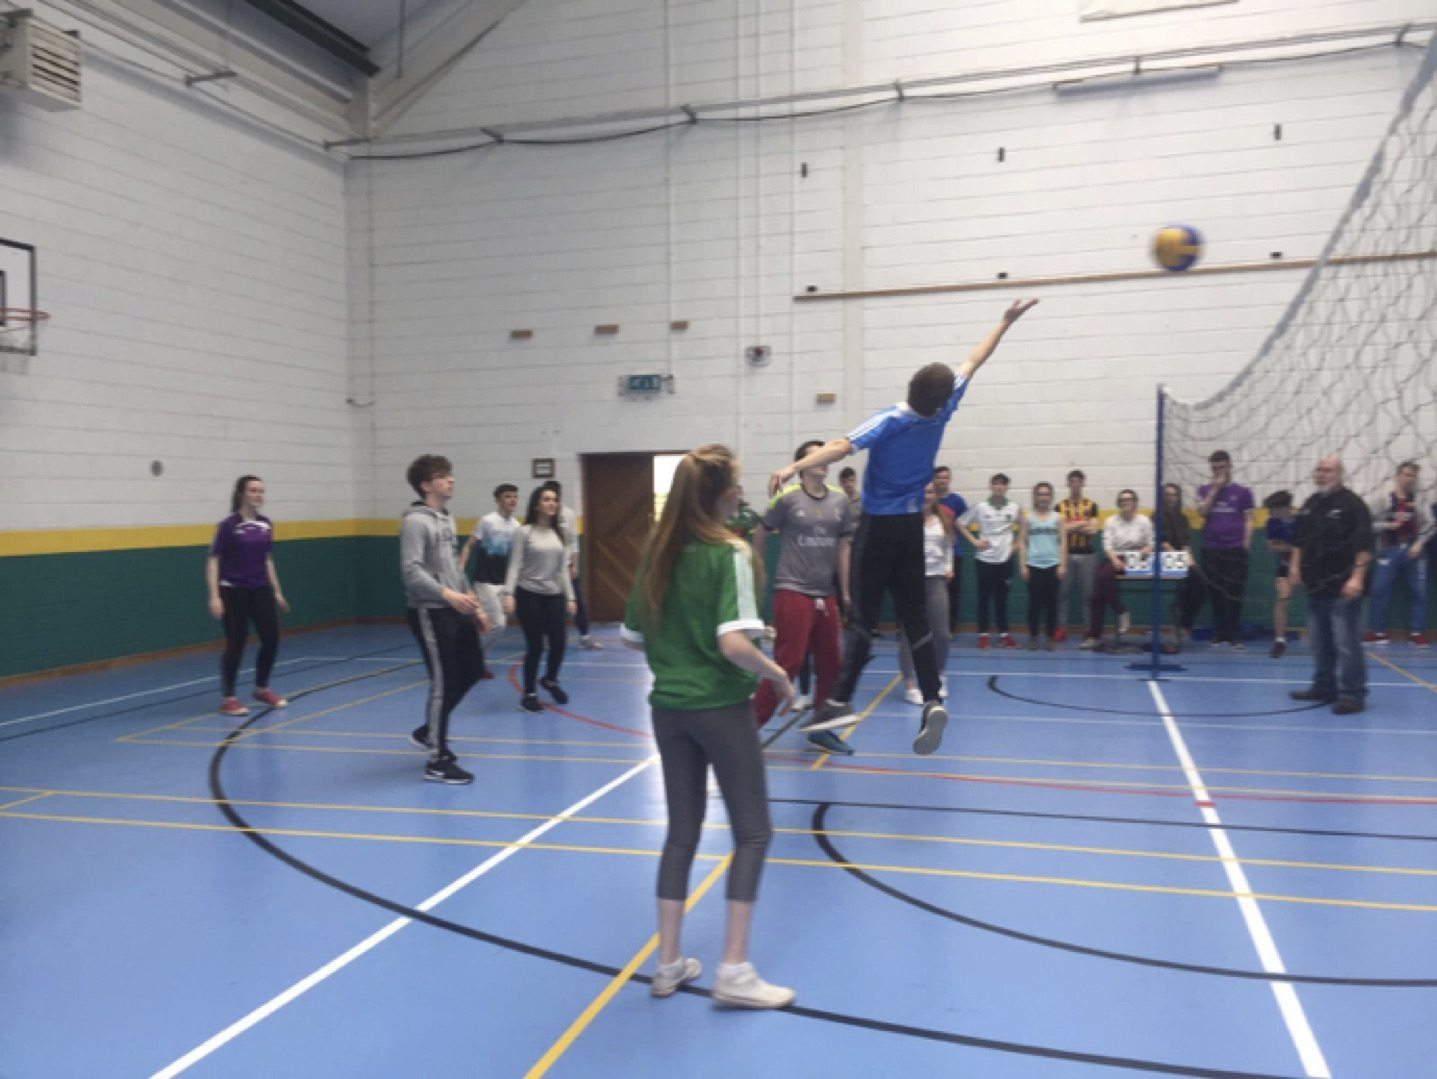 May 2017: Some Action from the teachers vs students volleyball game as part of active school week in desmond college